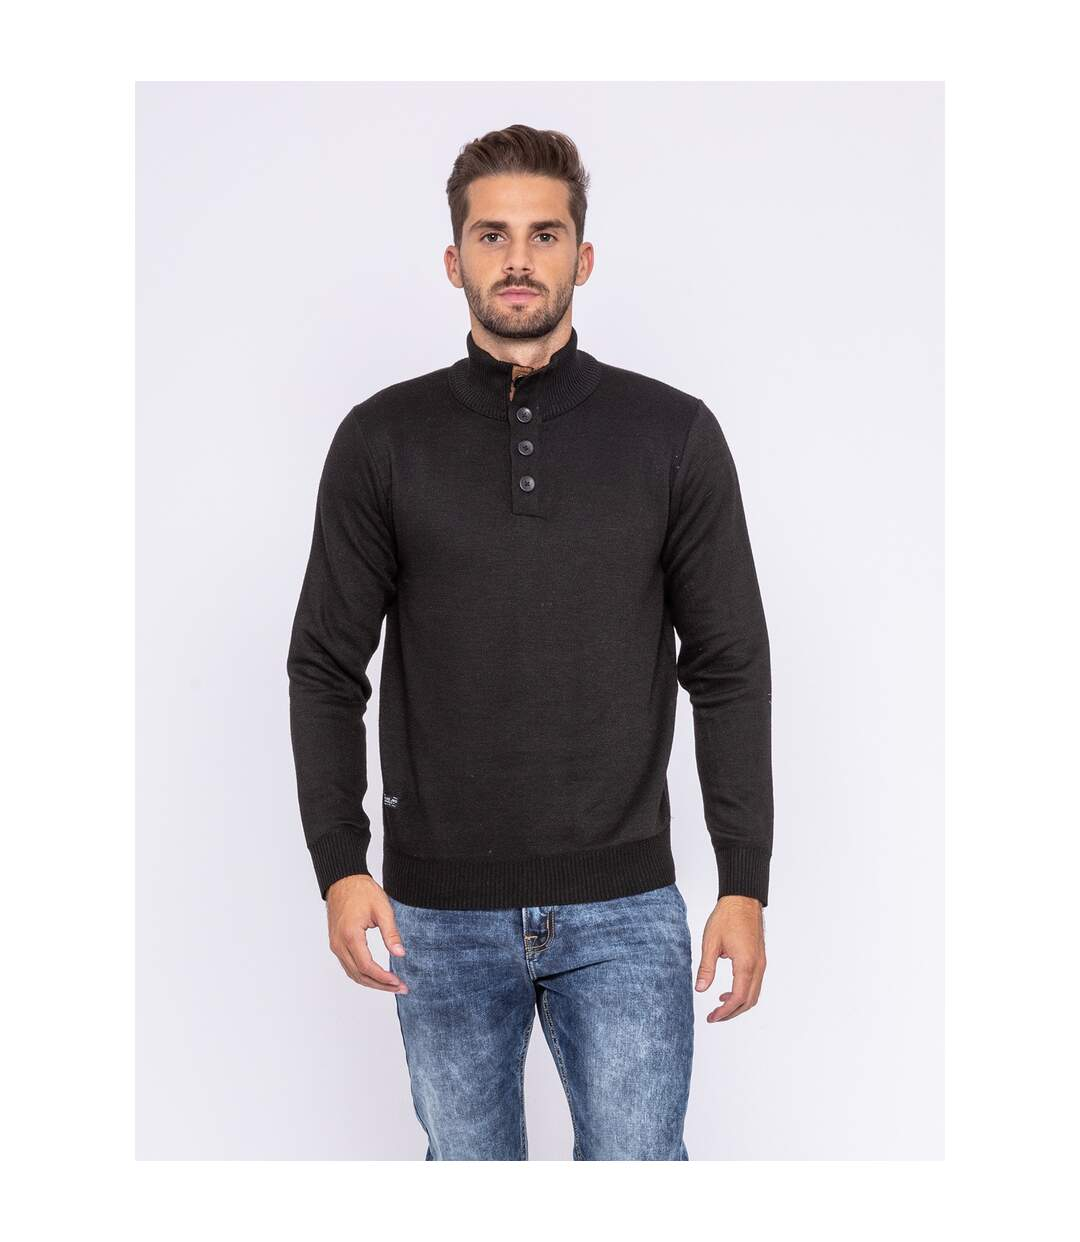 Dégagement Pull col montant boutons LULITE RITCHIE dsf.d455nksdKLFHG